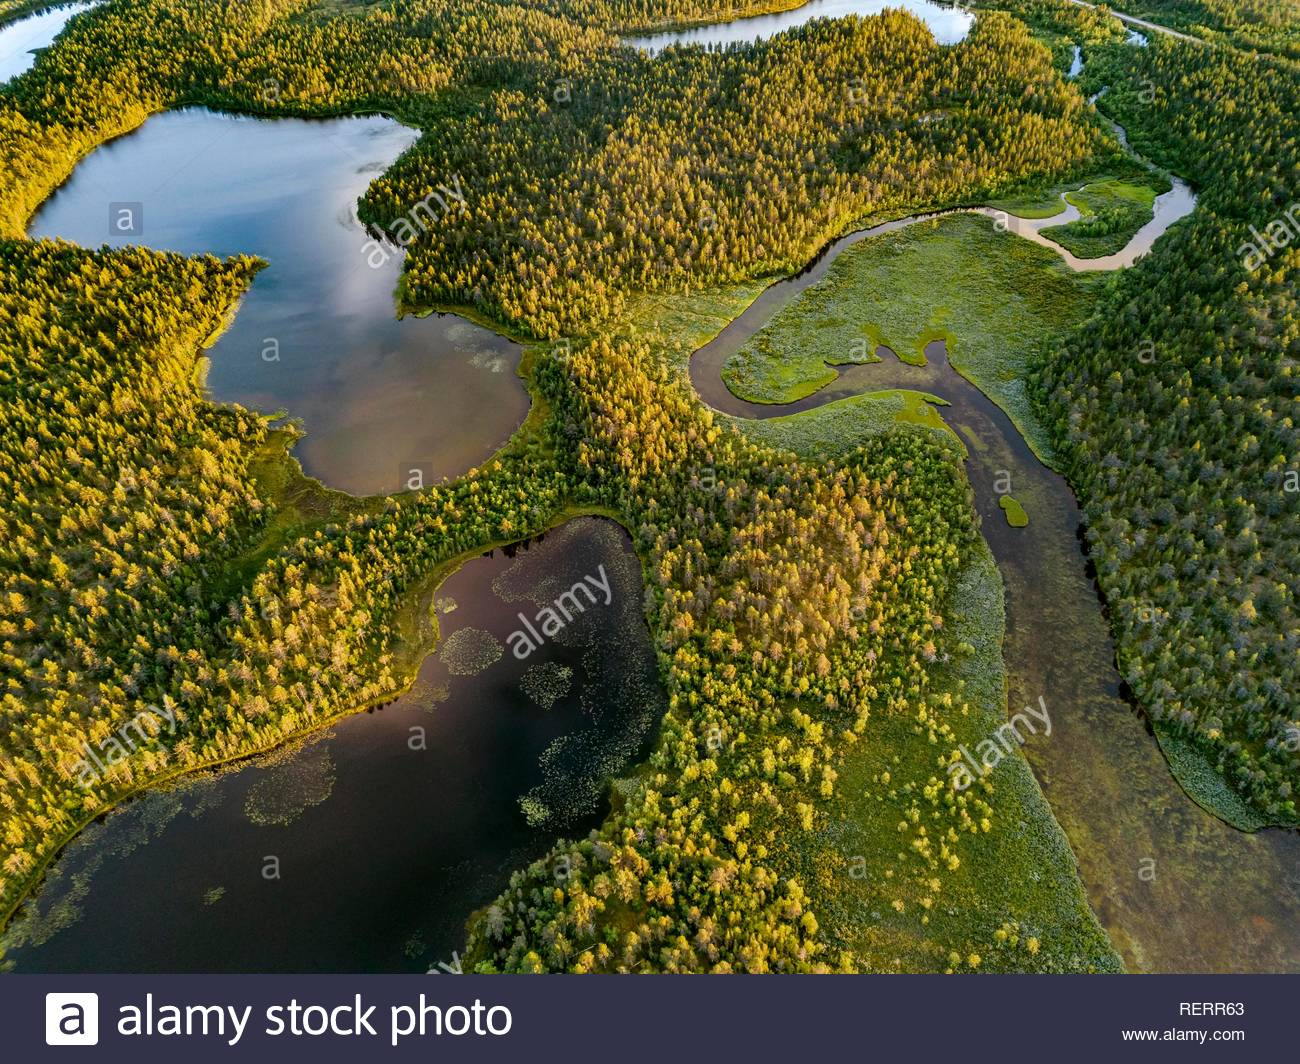 Drone view, aerial photo of Vuontisjärvi, small lakes and meanders, river loops in boreal arctic forest with conifers - Stock Image